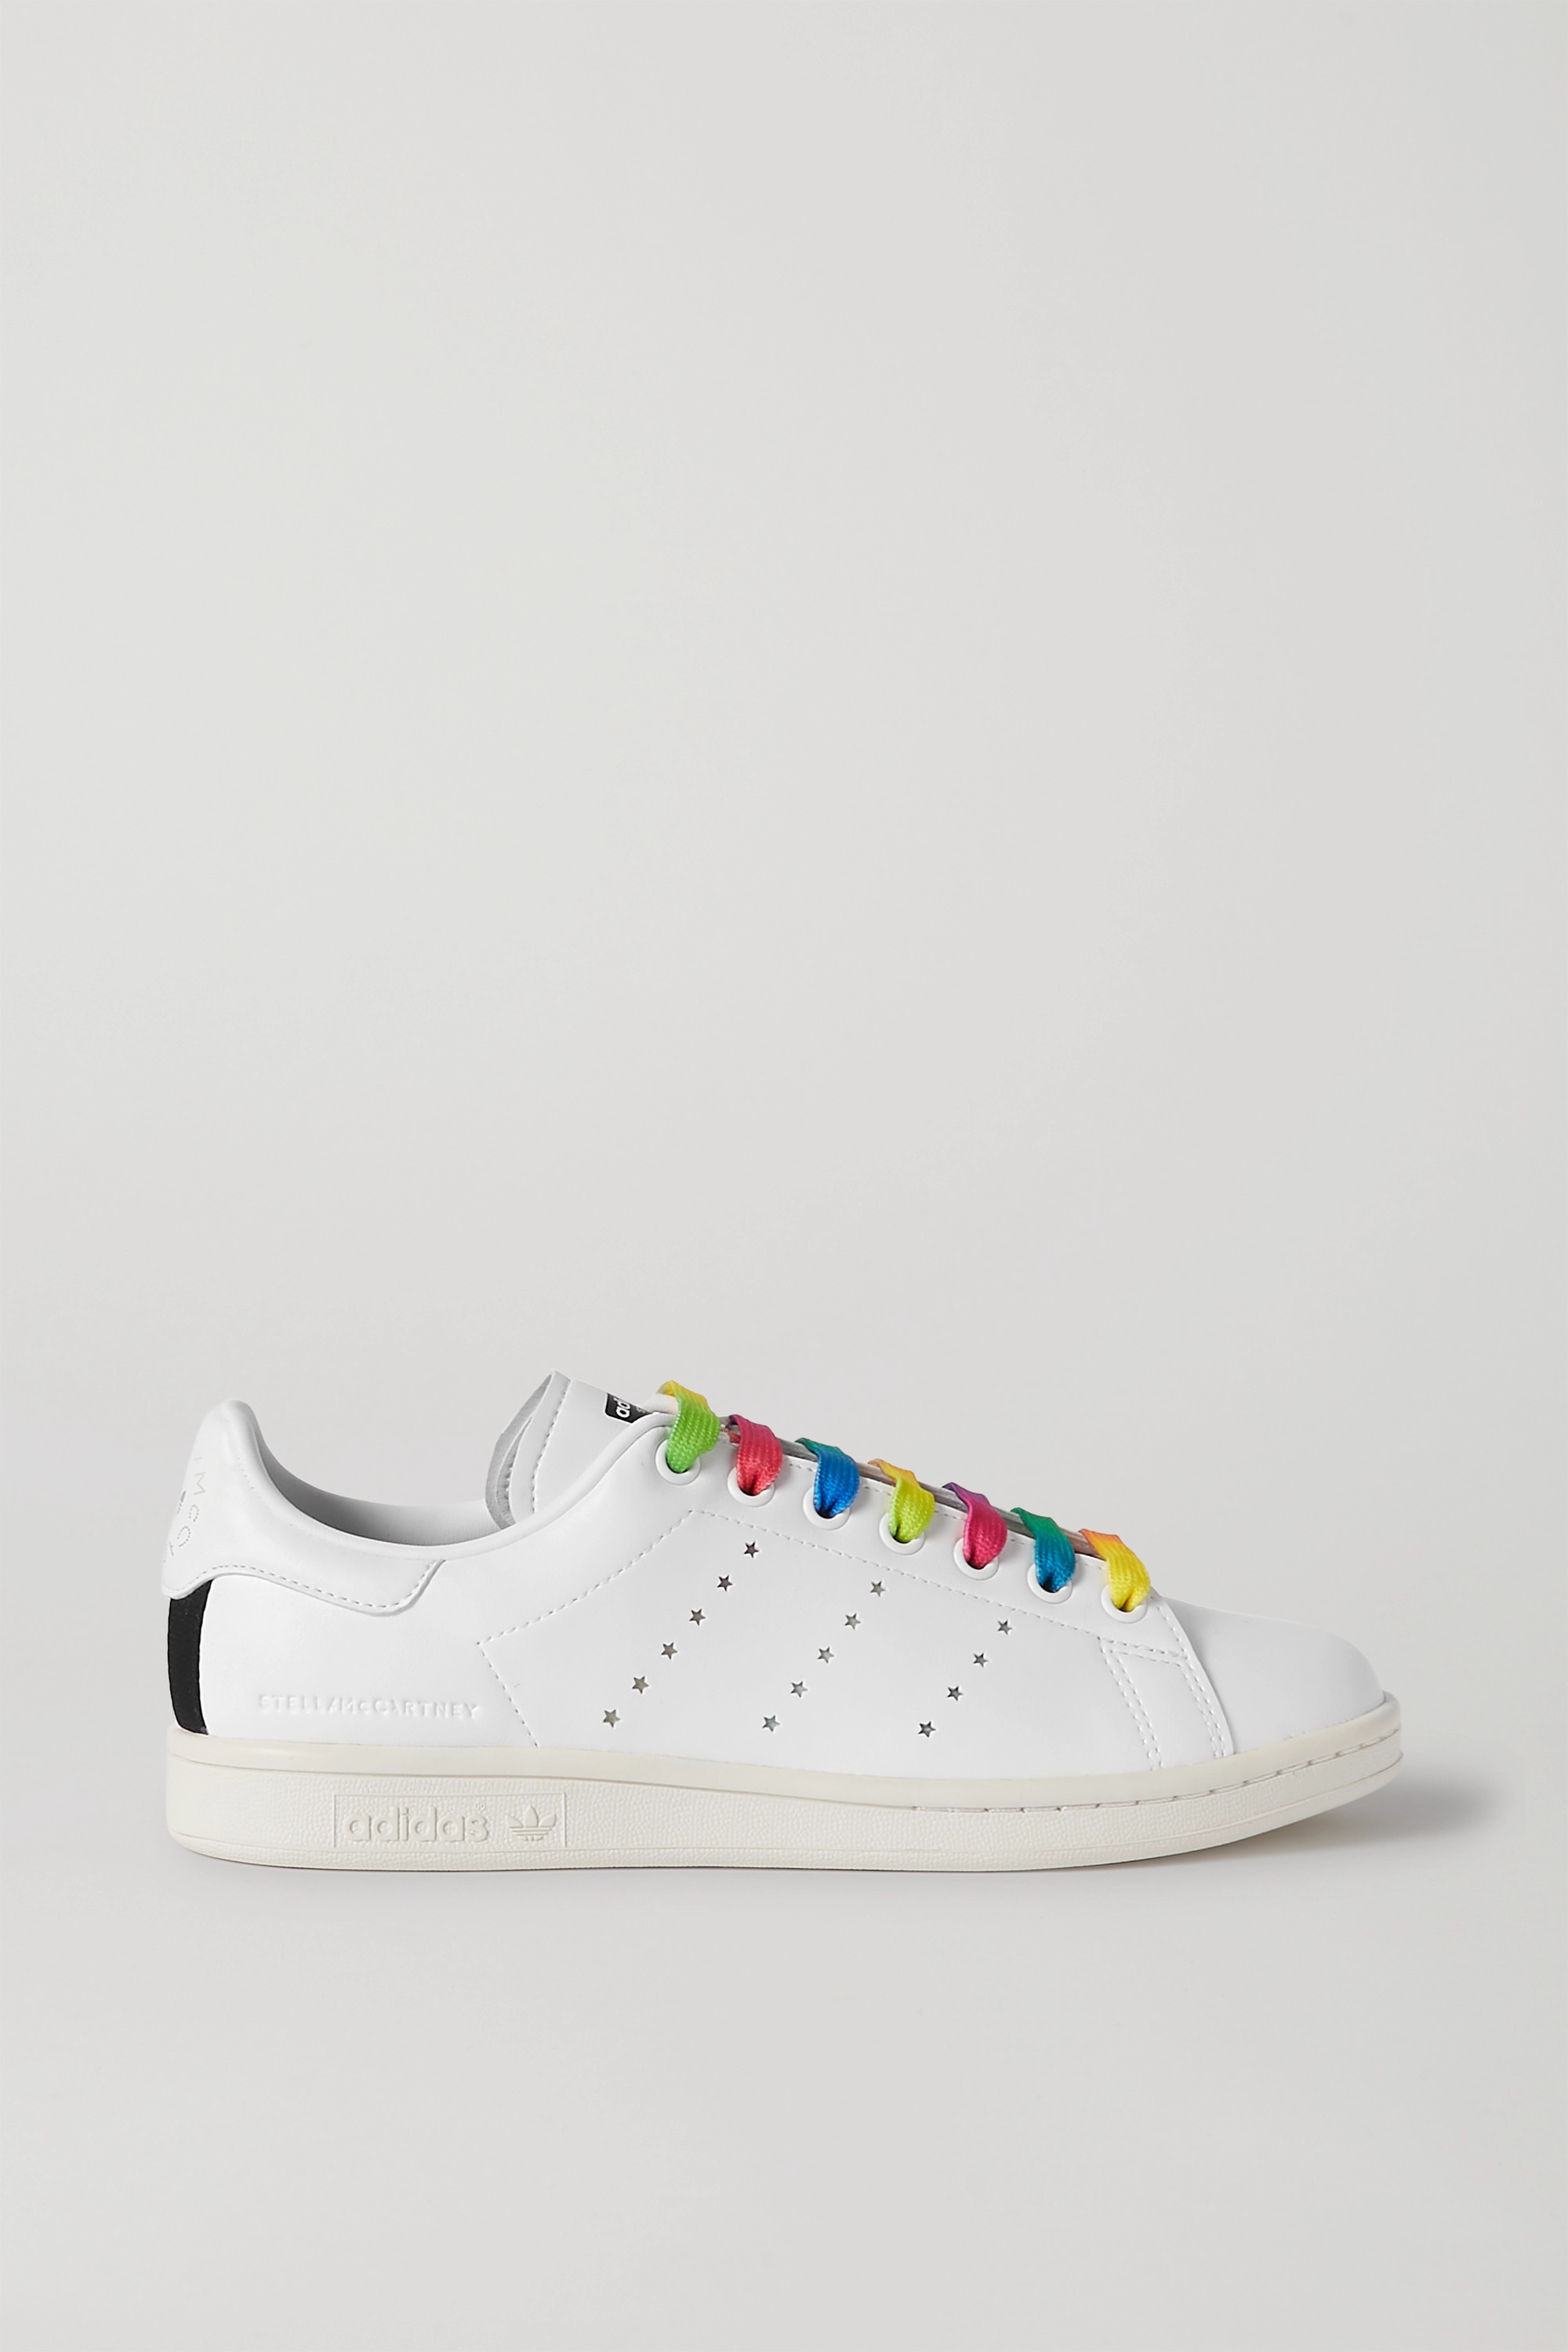 Stella McCartney + adidas Originals Stan Smith vegan leather sneakers